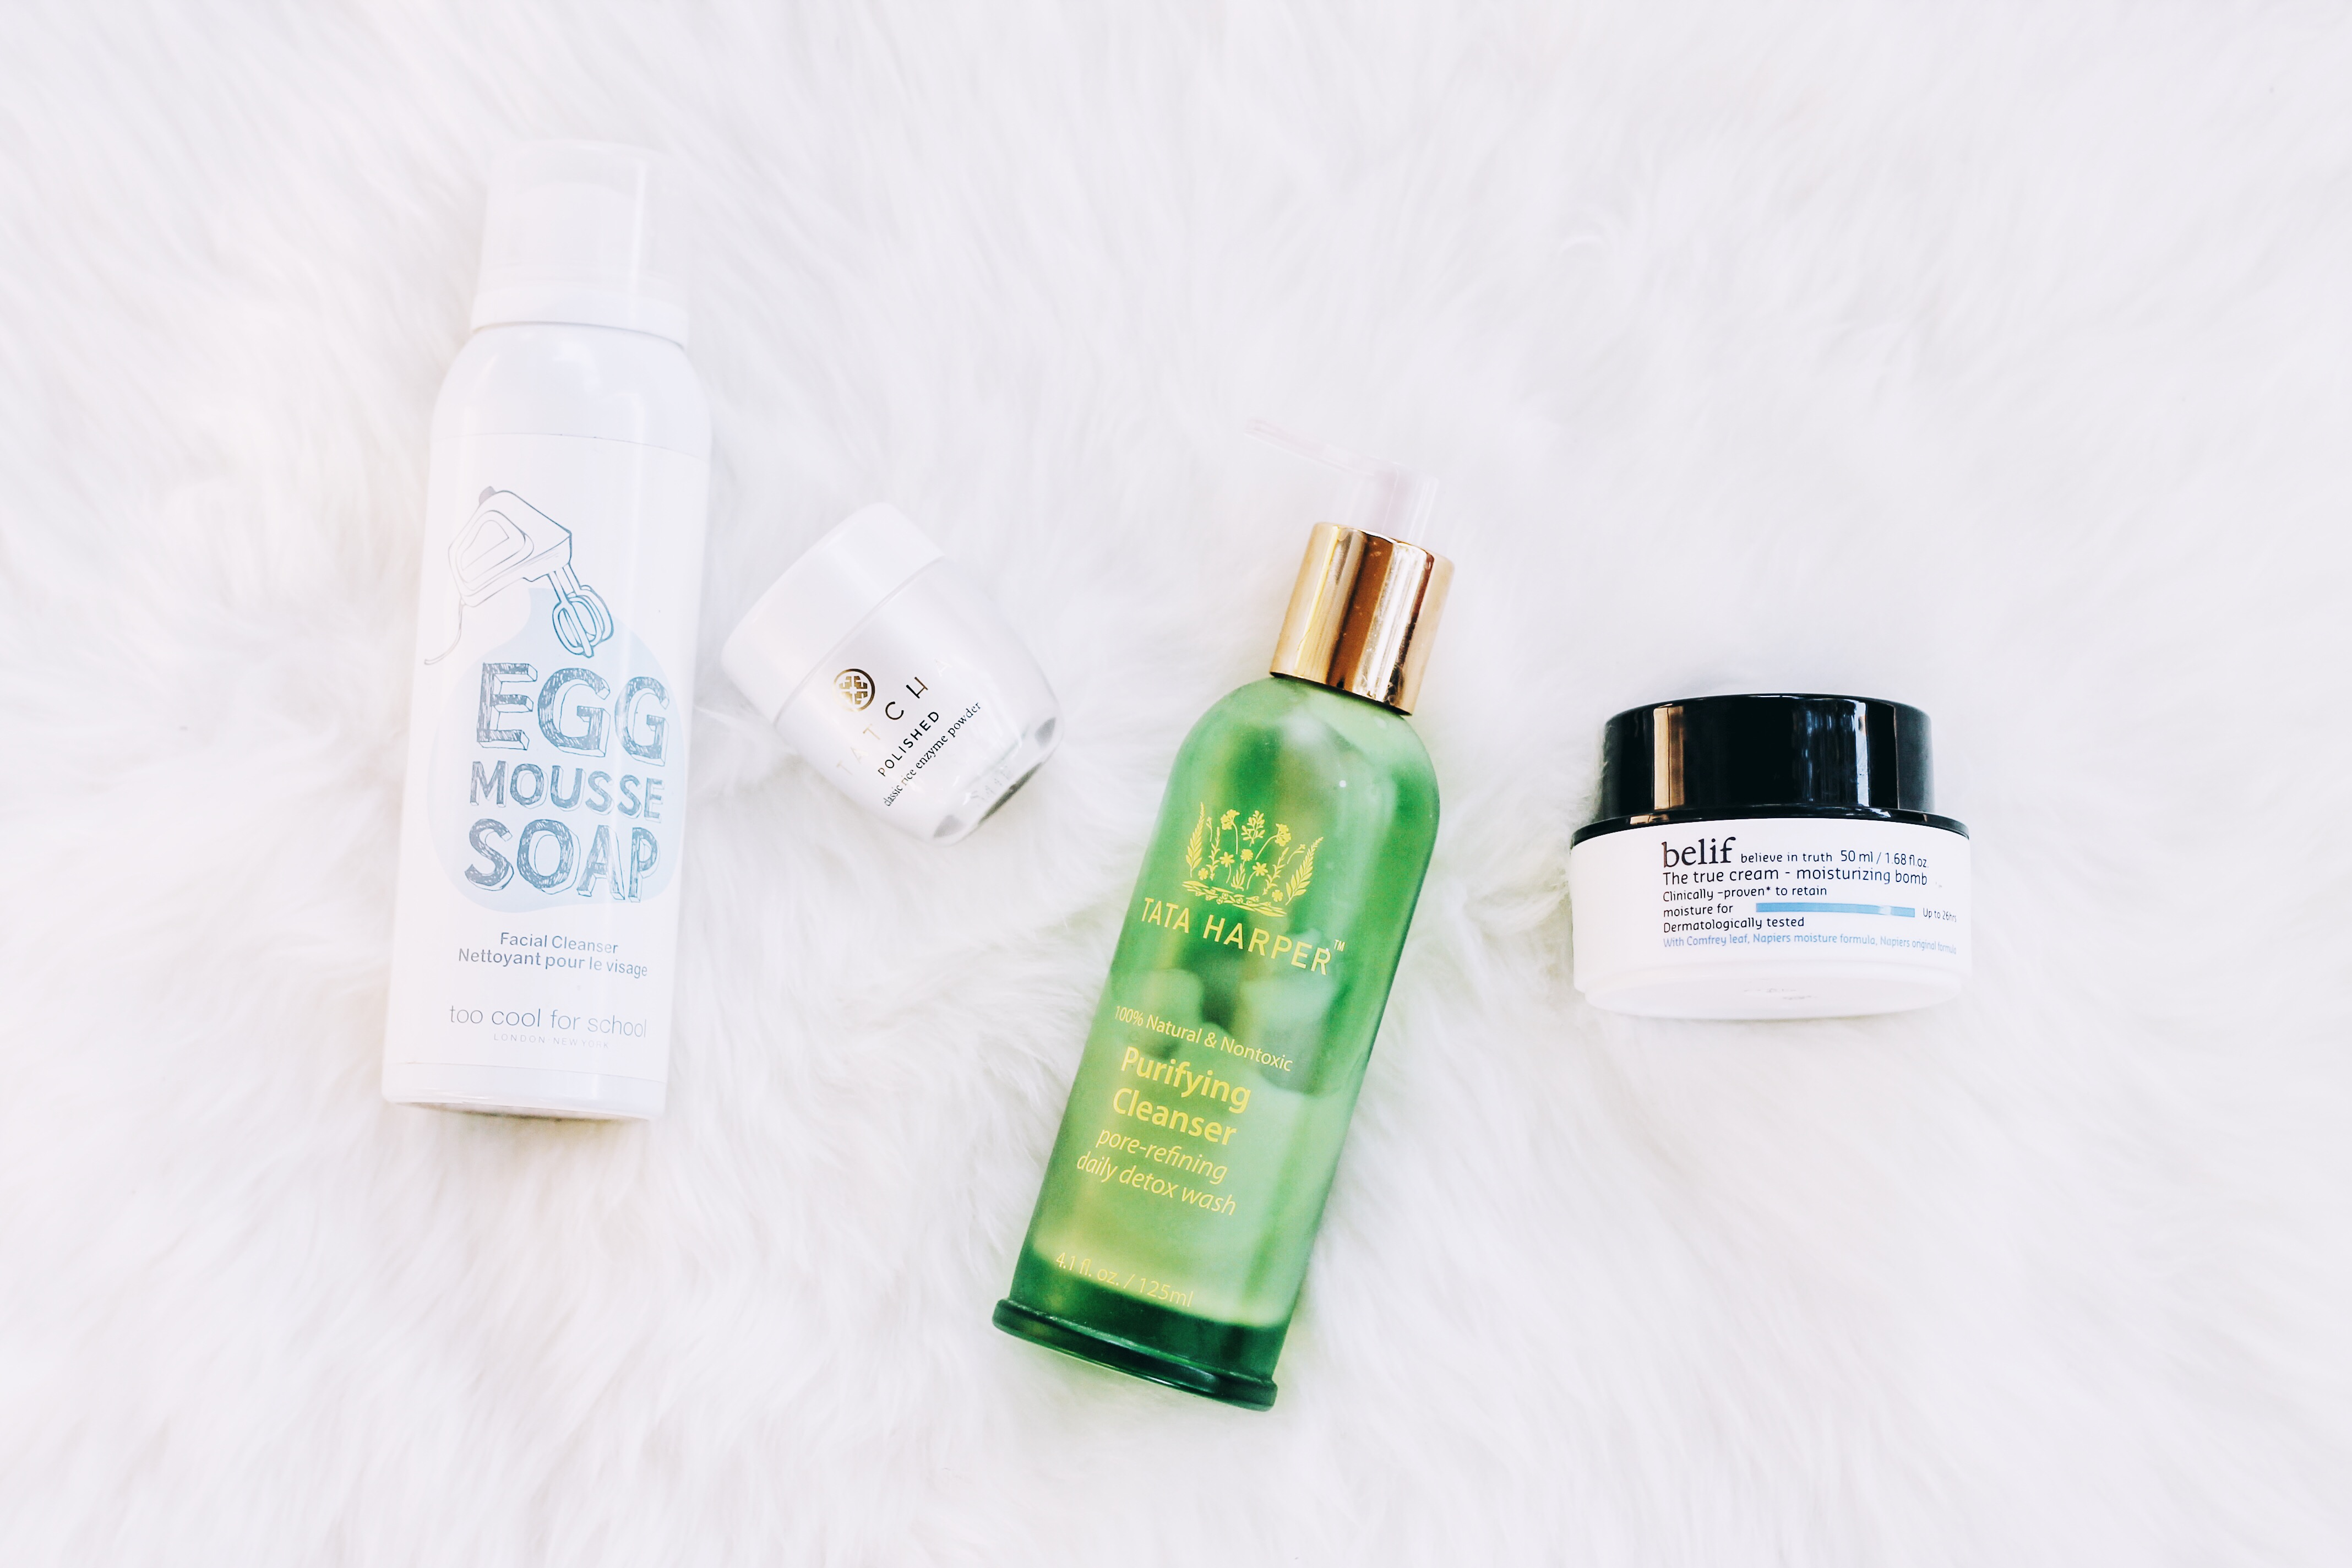 Belif The True Cream Aqua Bomb, Too Cool For School Egg Mousse Soap Facial Cleanser, Tata Harper Purifying Cleanser, Tatcha Polished Classic Rice Enzyme Powder